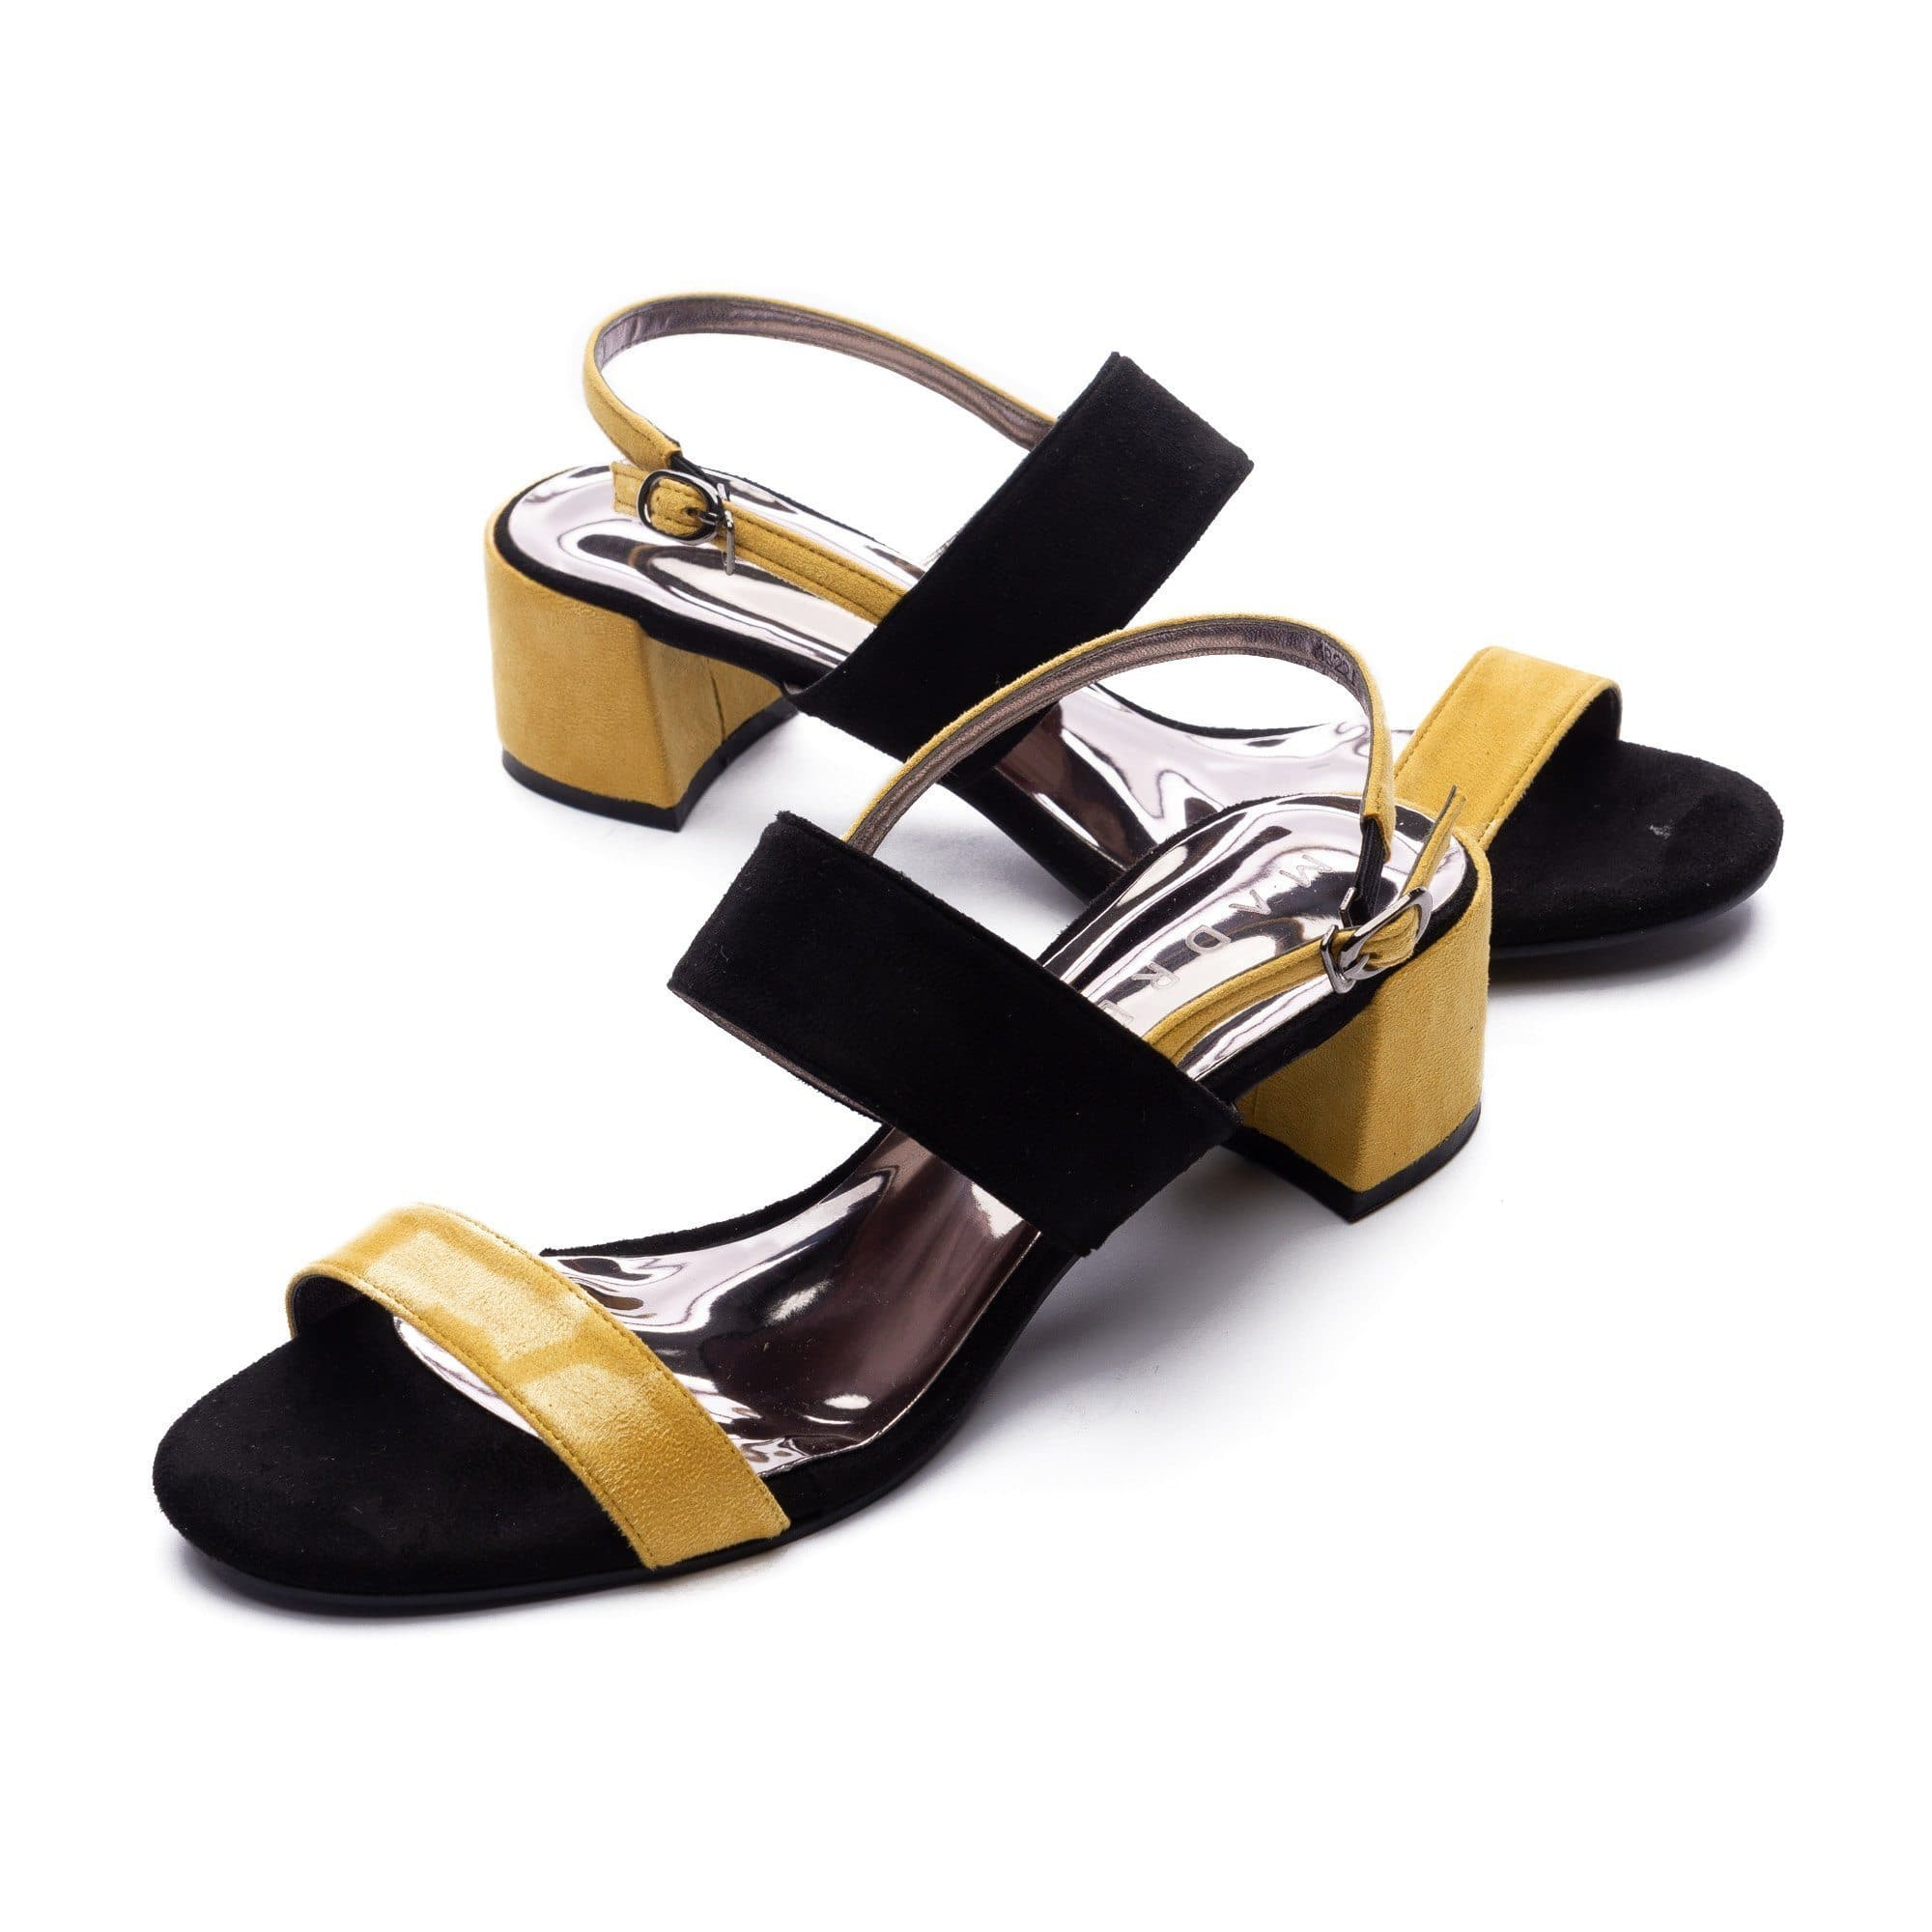 Trizz Block Heels Madre Collection 35(4) YELLOW